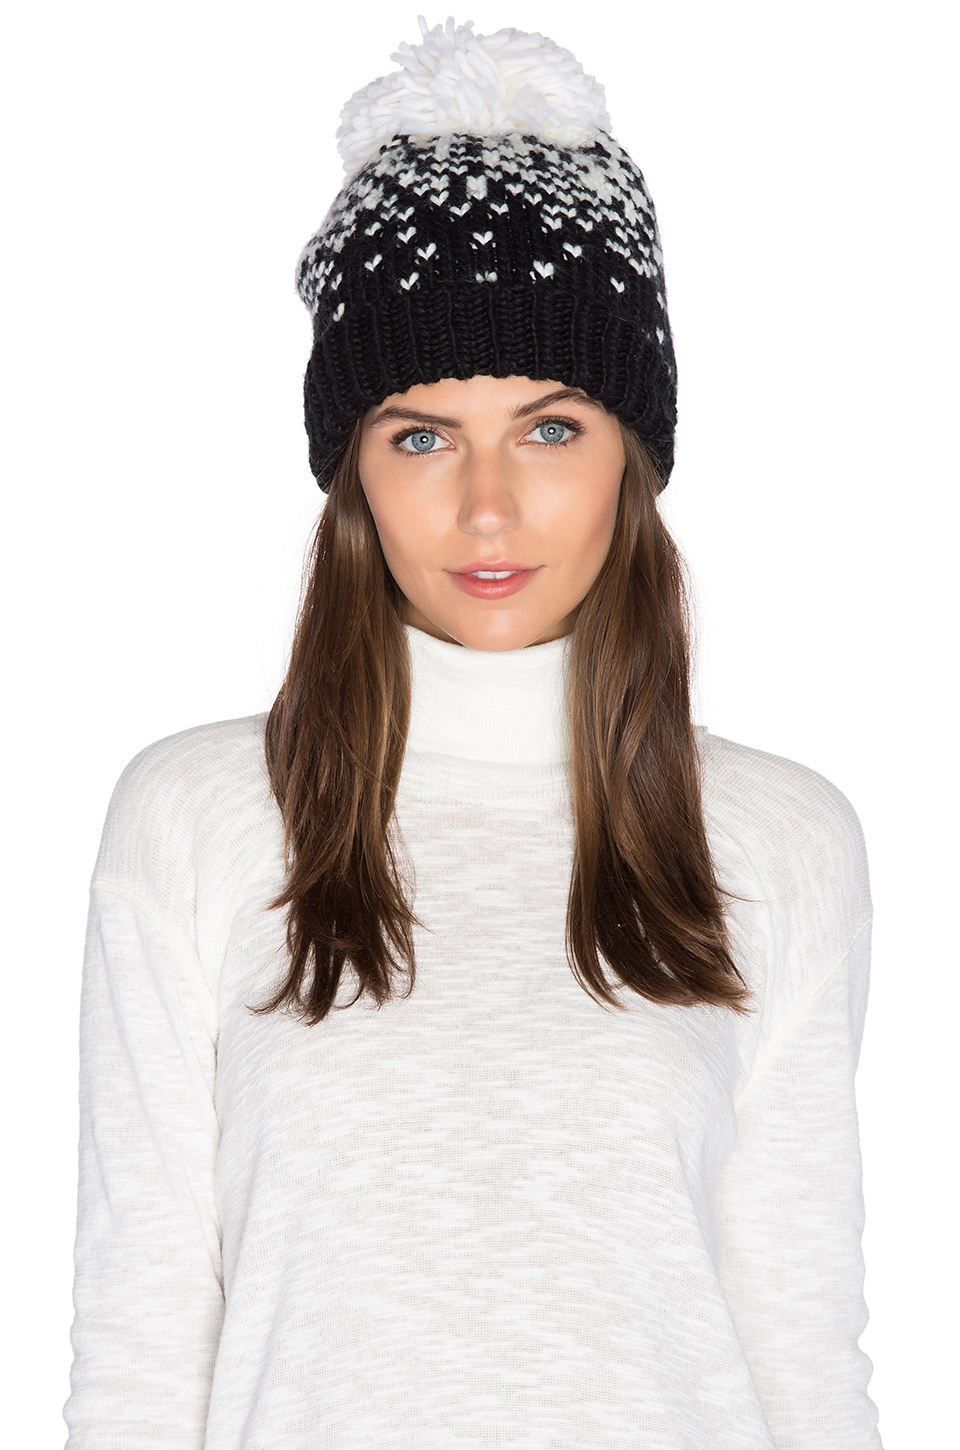 Genie by Eugenia Kim Brady Beanie in White & Black